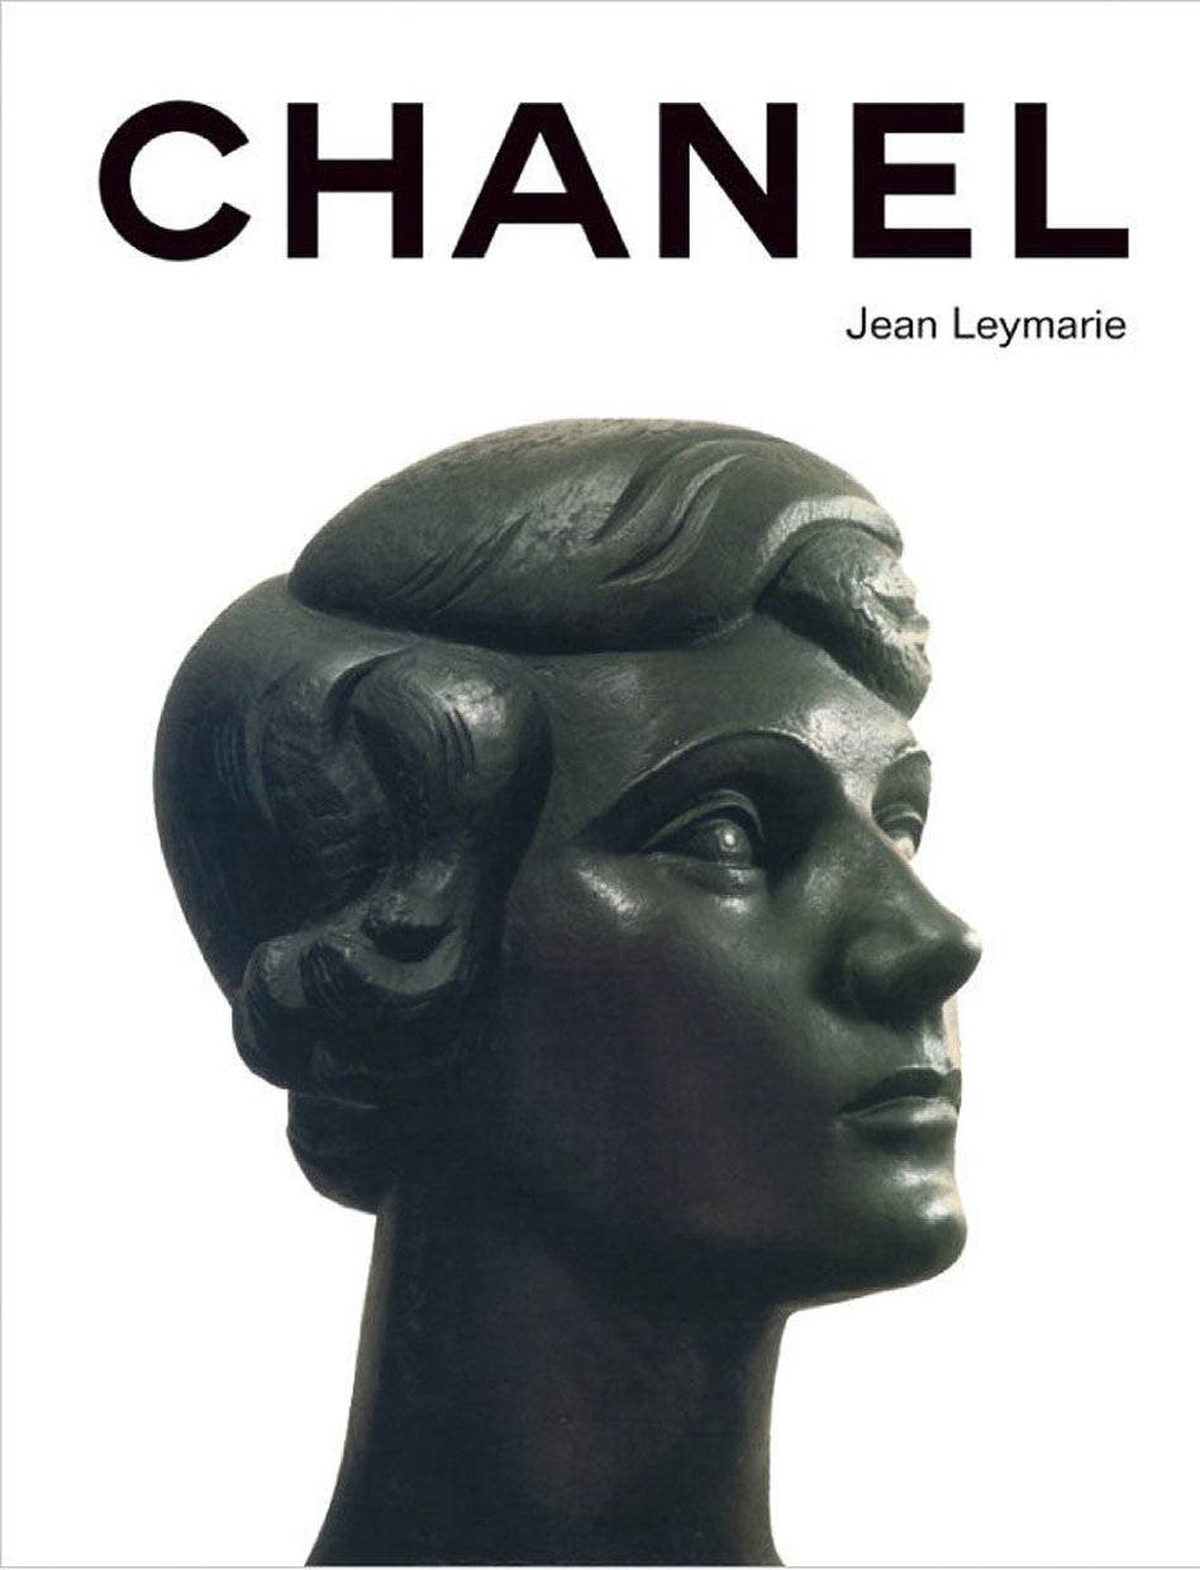 Jean Leymarie's Chanel $54 at Chapters/Indigo (www.chapters.indigo.ca)